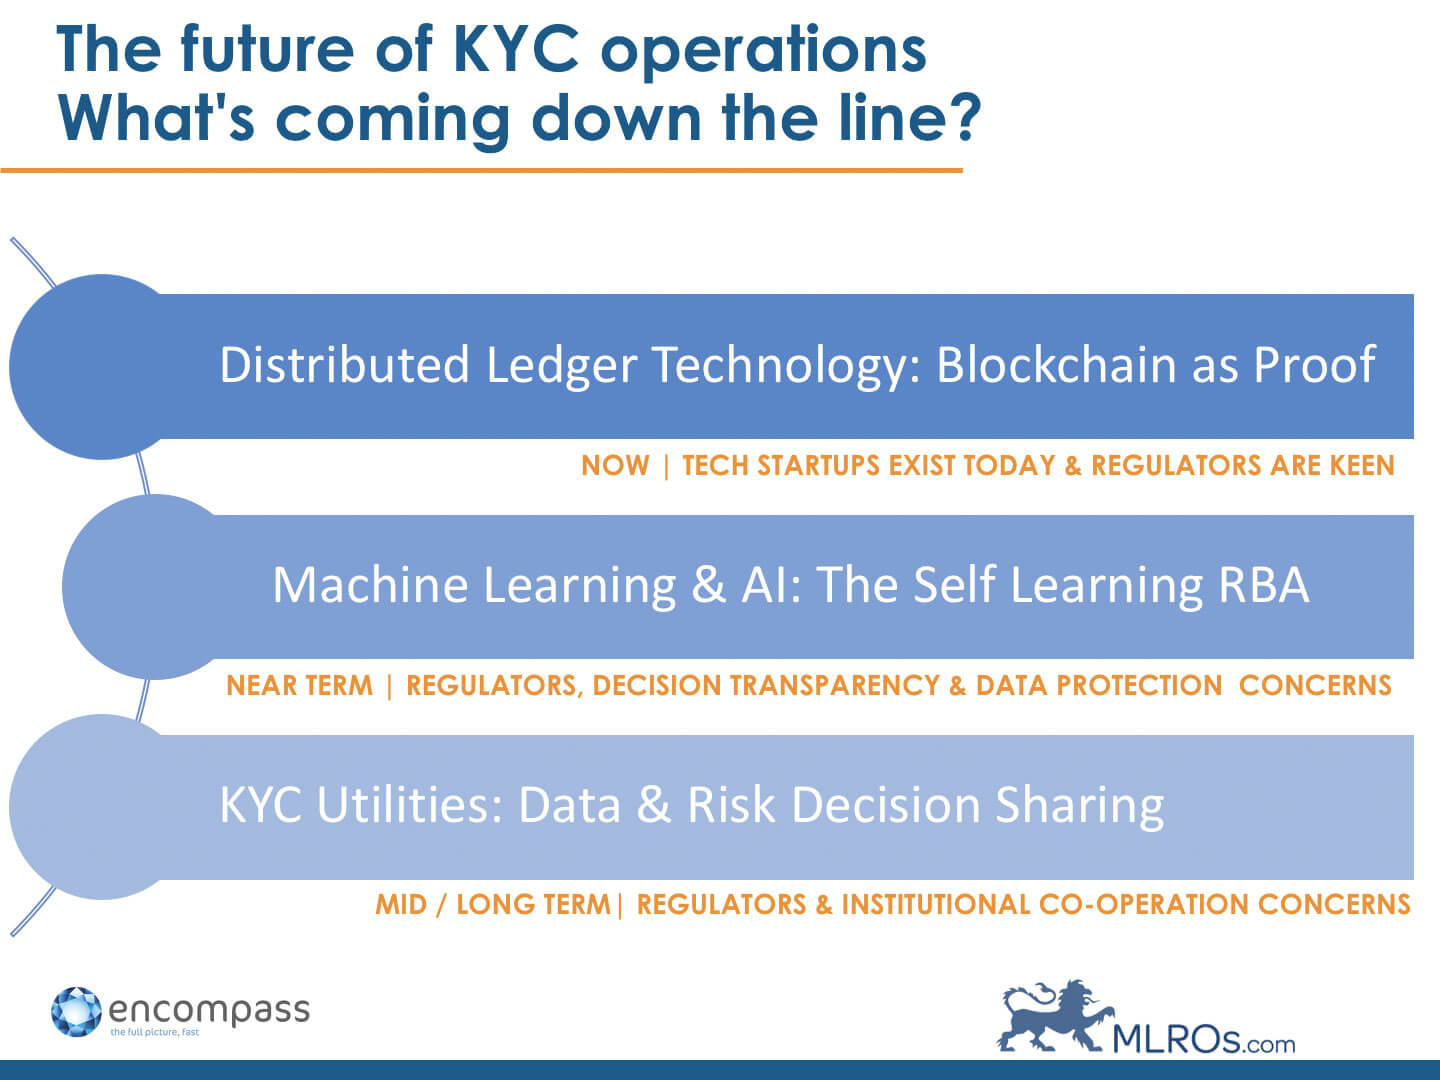 The Future of KYC Operations: What's Coming Down the Line? | Encompass Blog